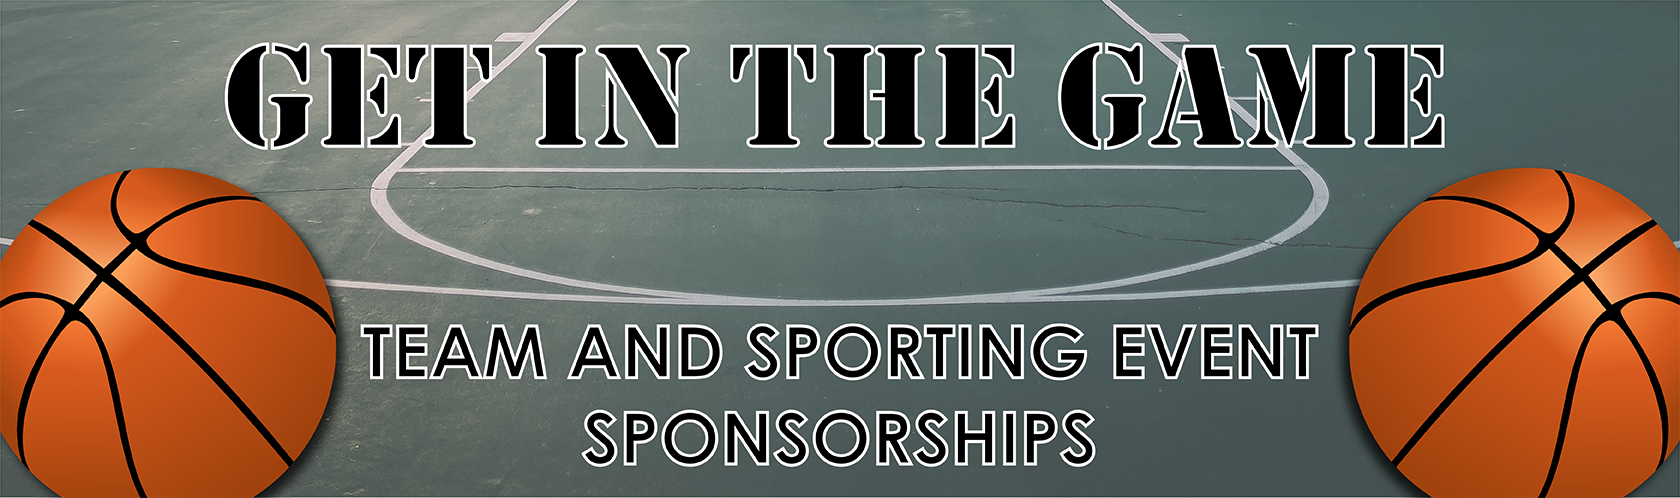 Get in the Game: Team and Sporting Event Sponsorships